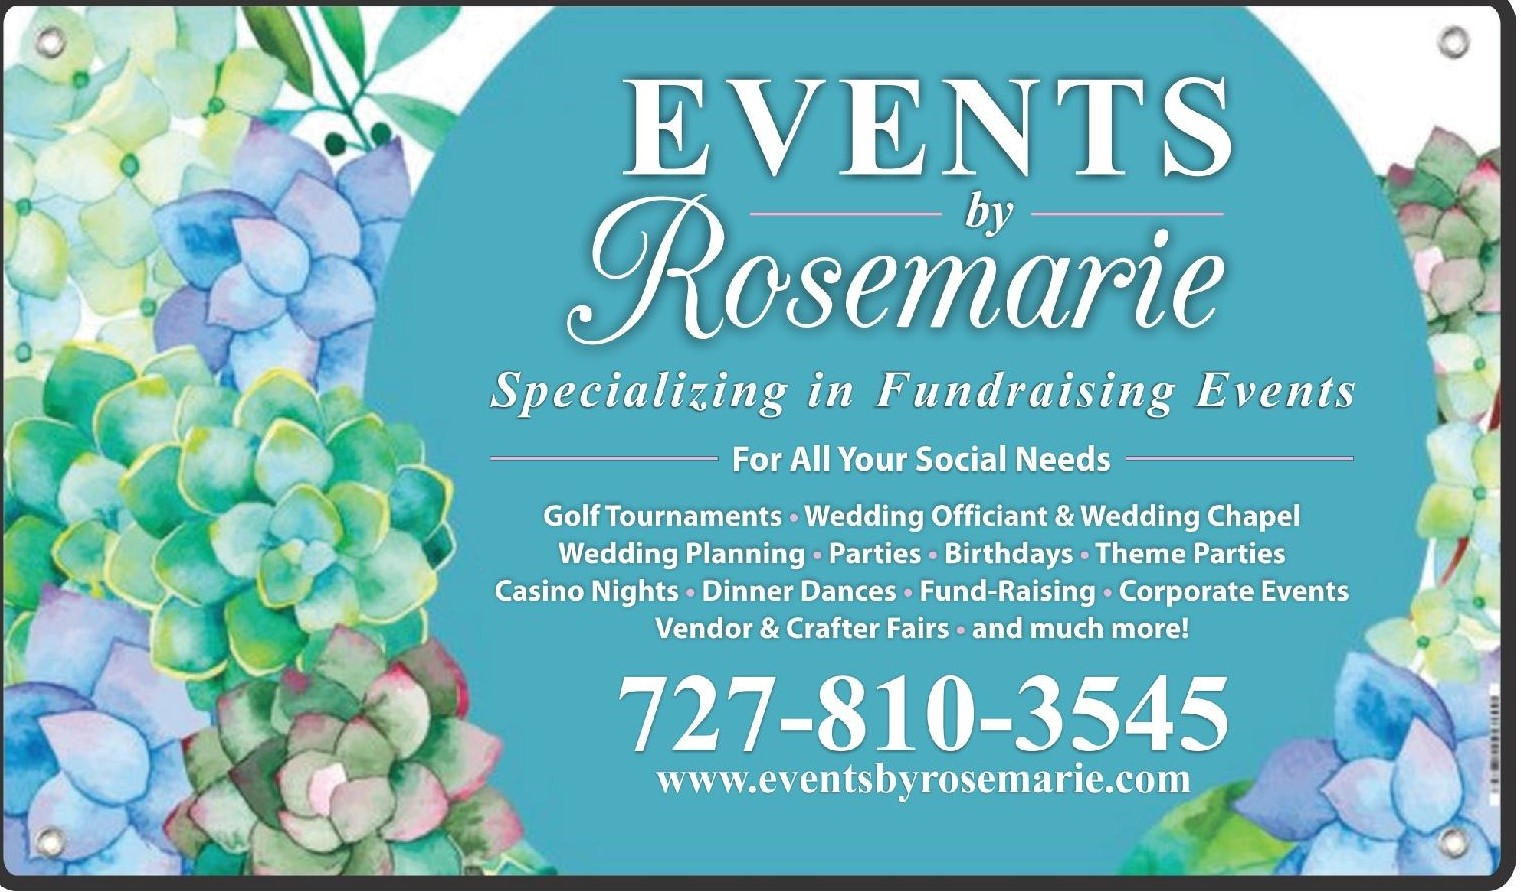 Events by Rosemarie